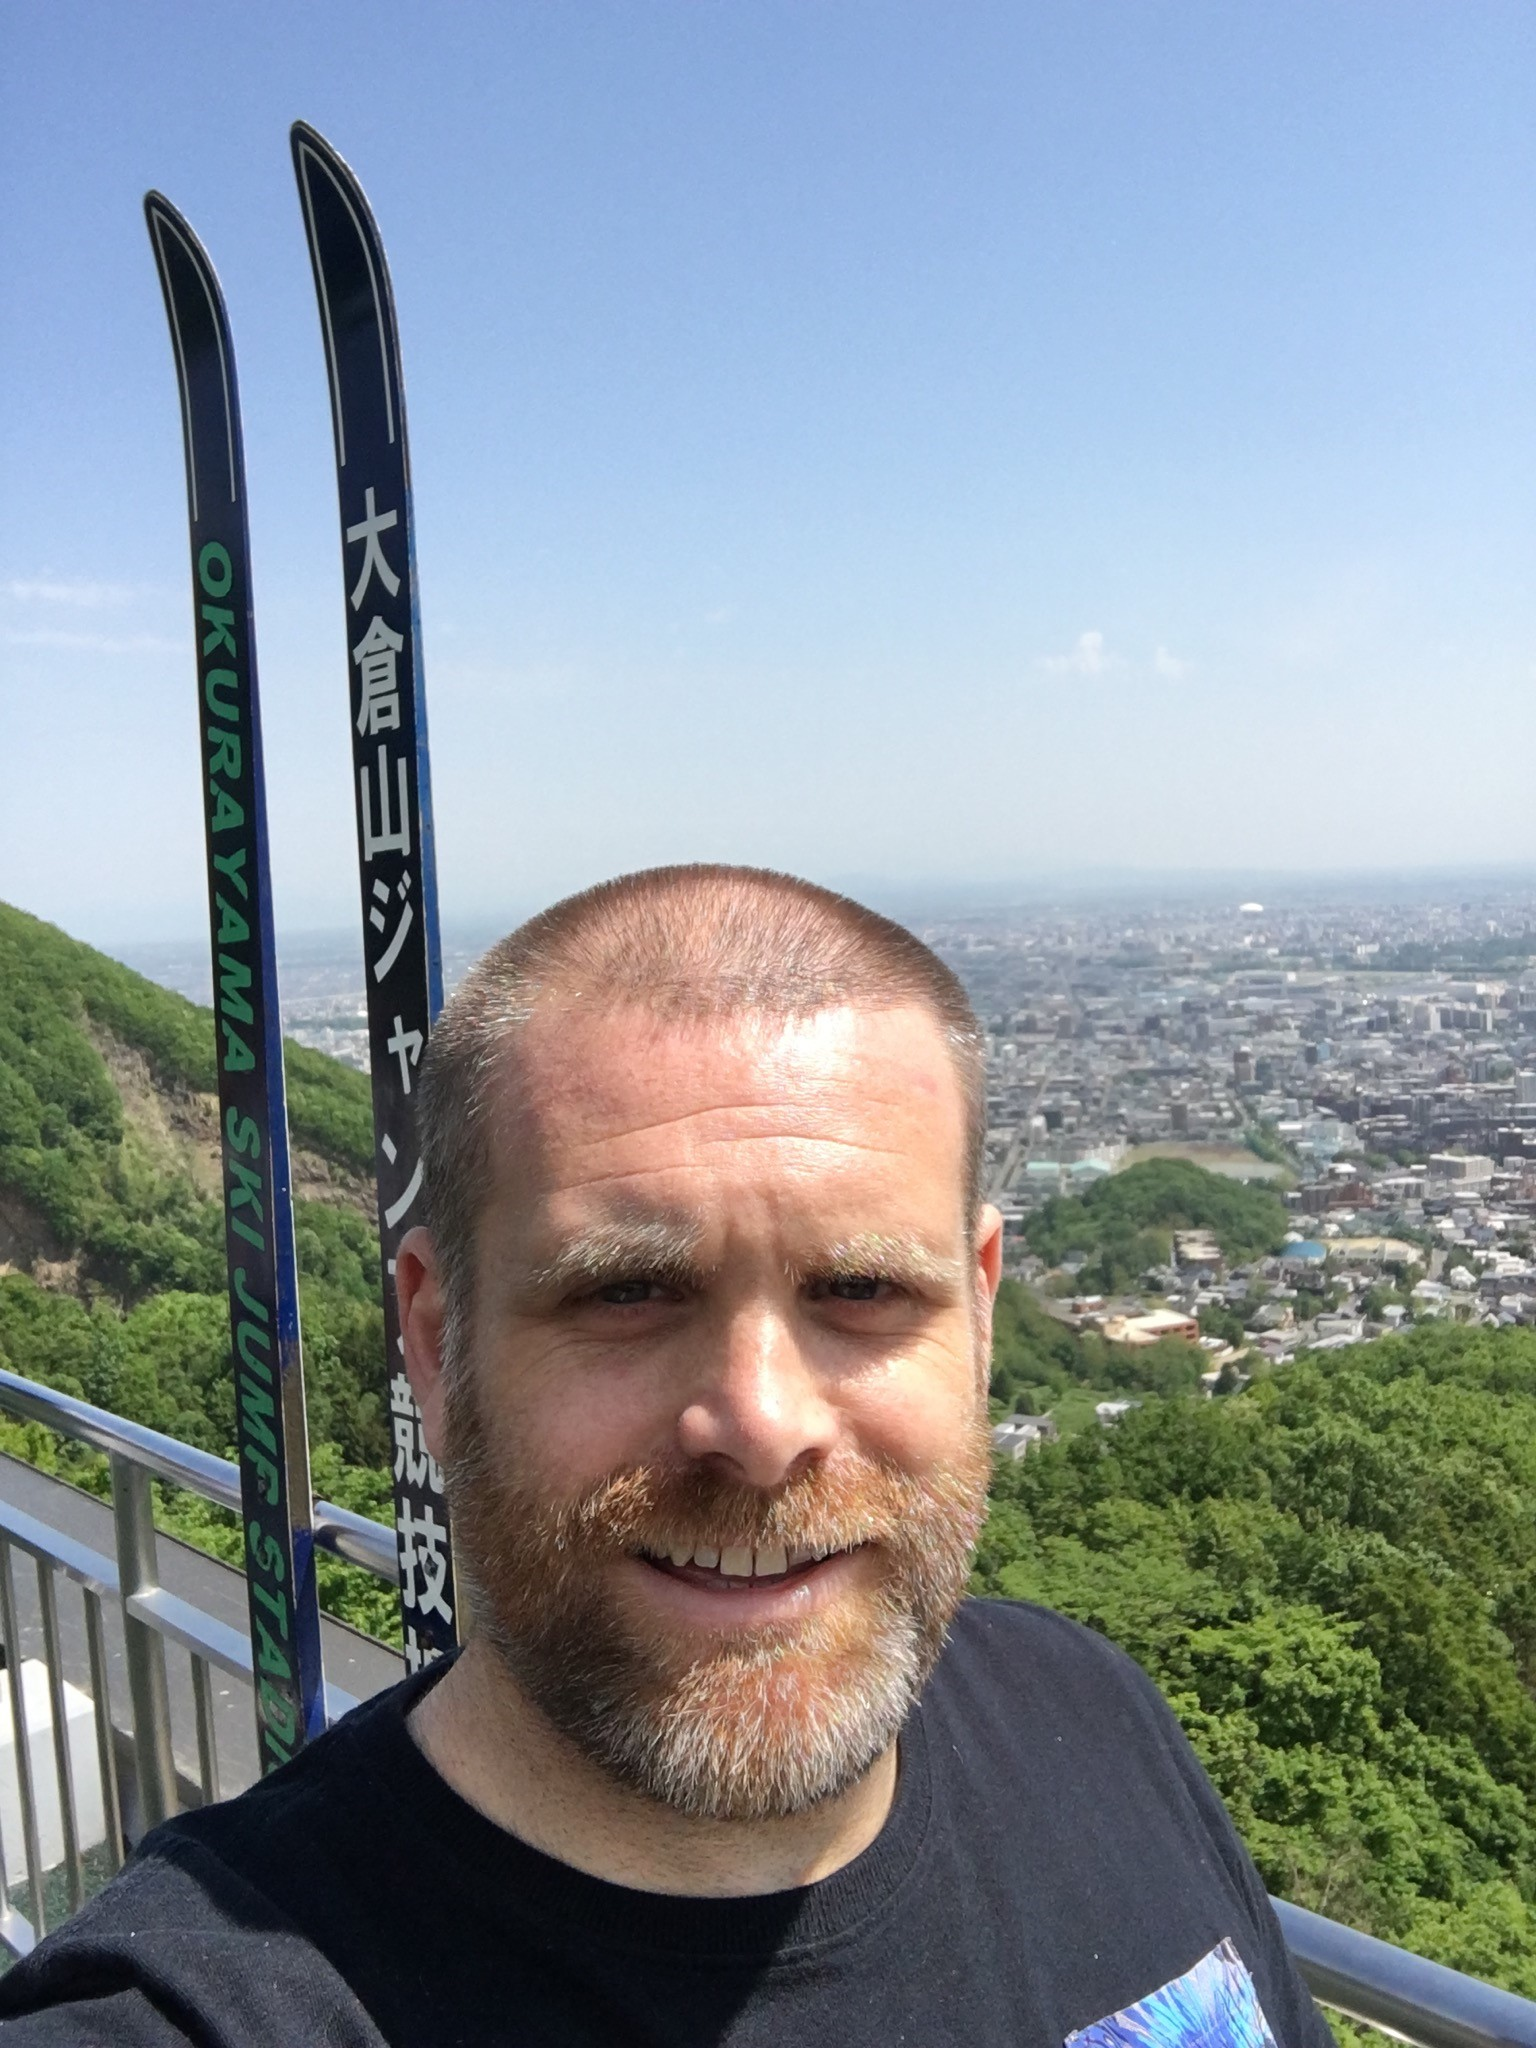 Selfie at the top of the ski jump used for the Winter Olympics in Saporro 1972.